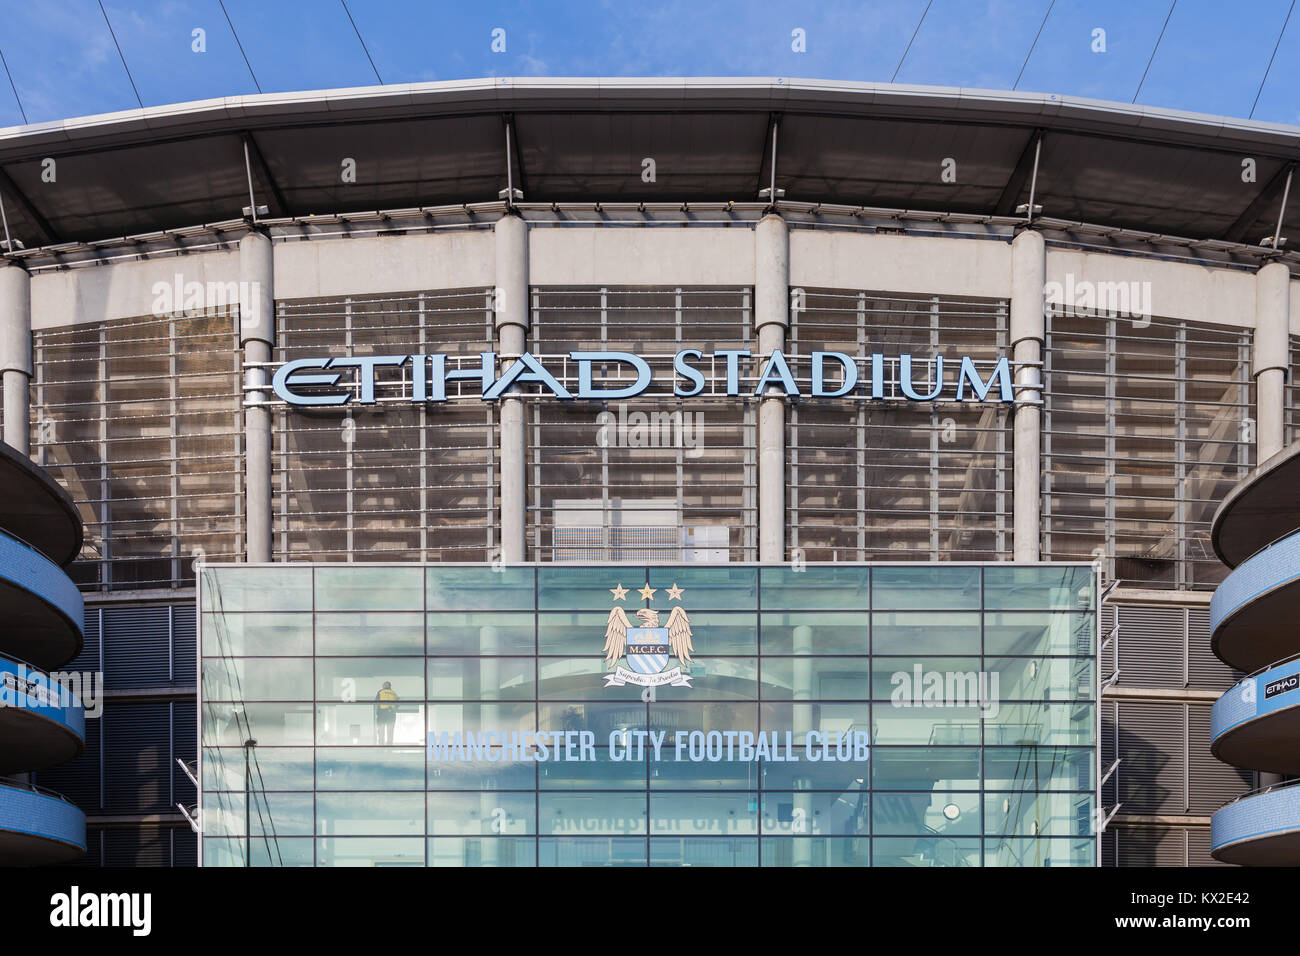 The frontage of the Etihad Stadium, home of Manchester City Football Club, in Manchester, England. - Stock Image